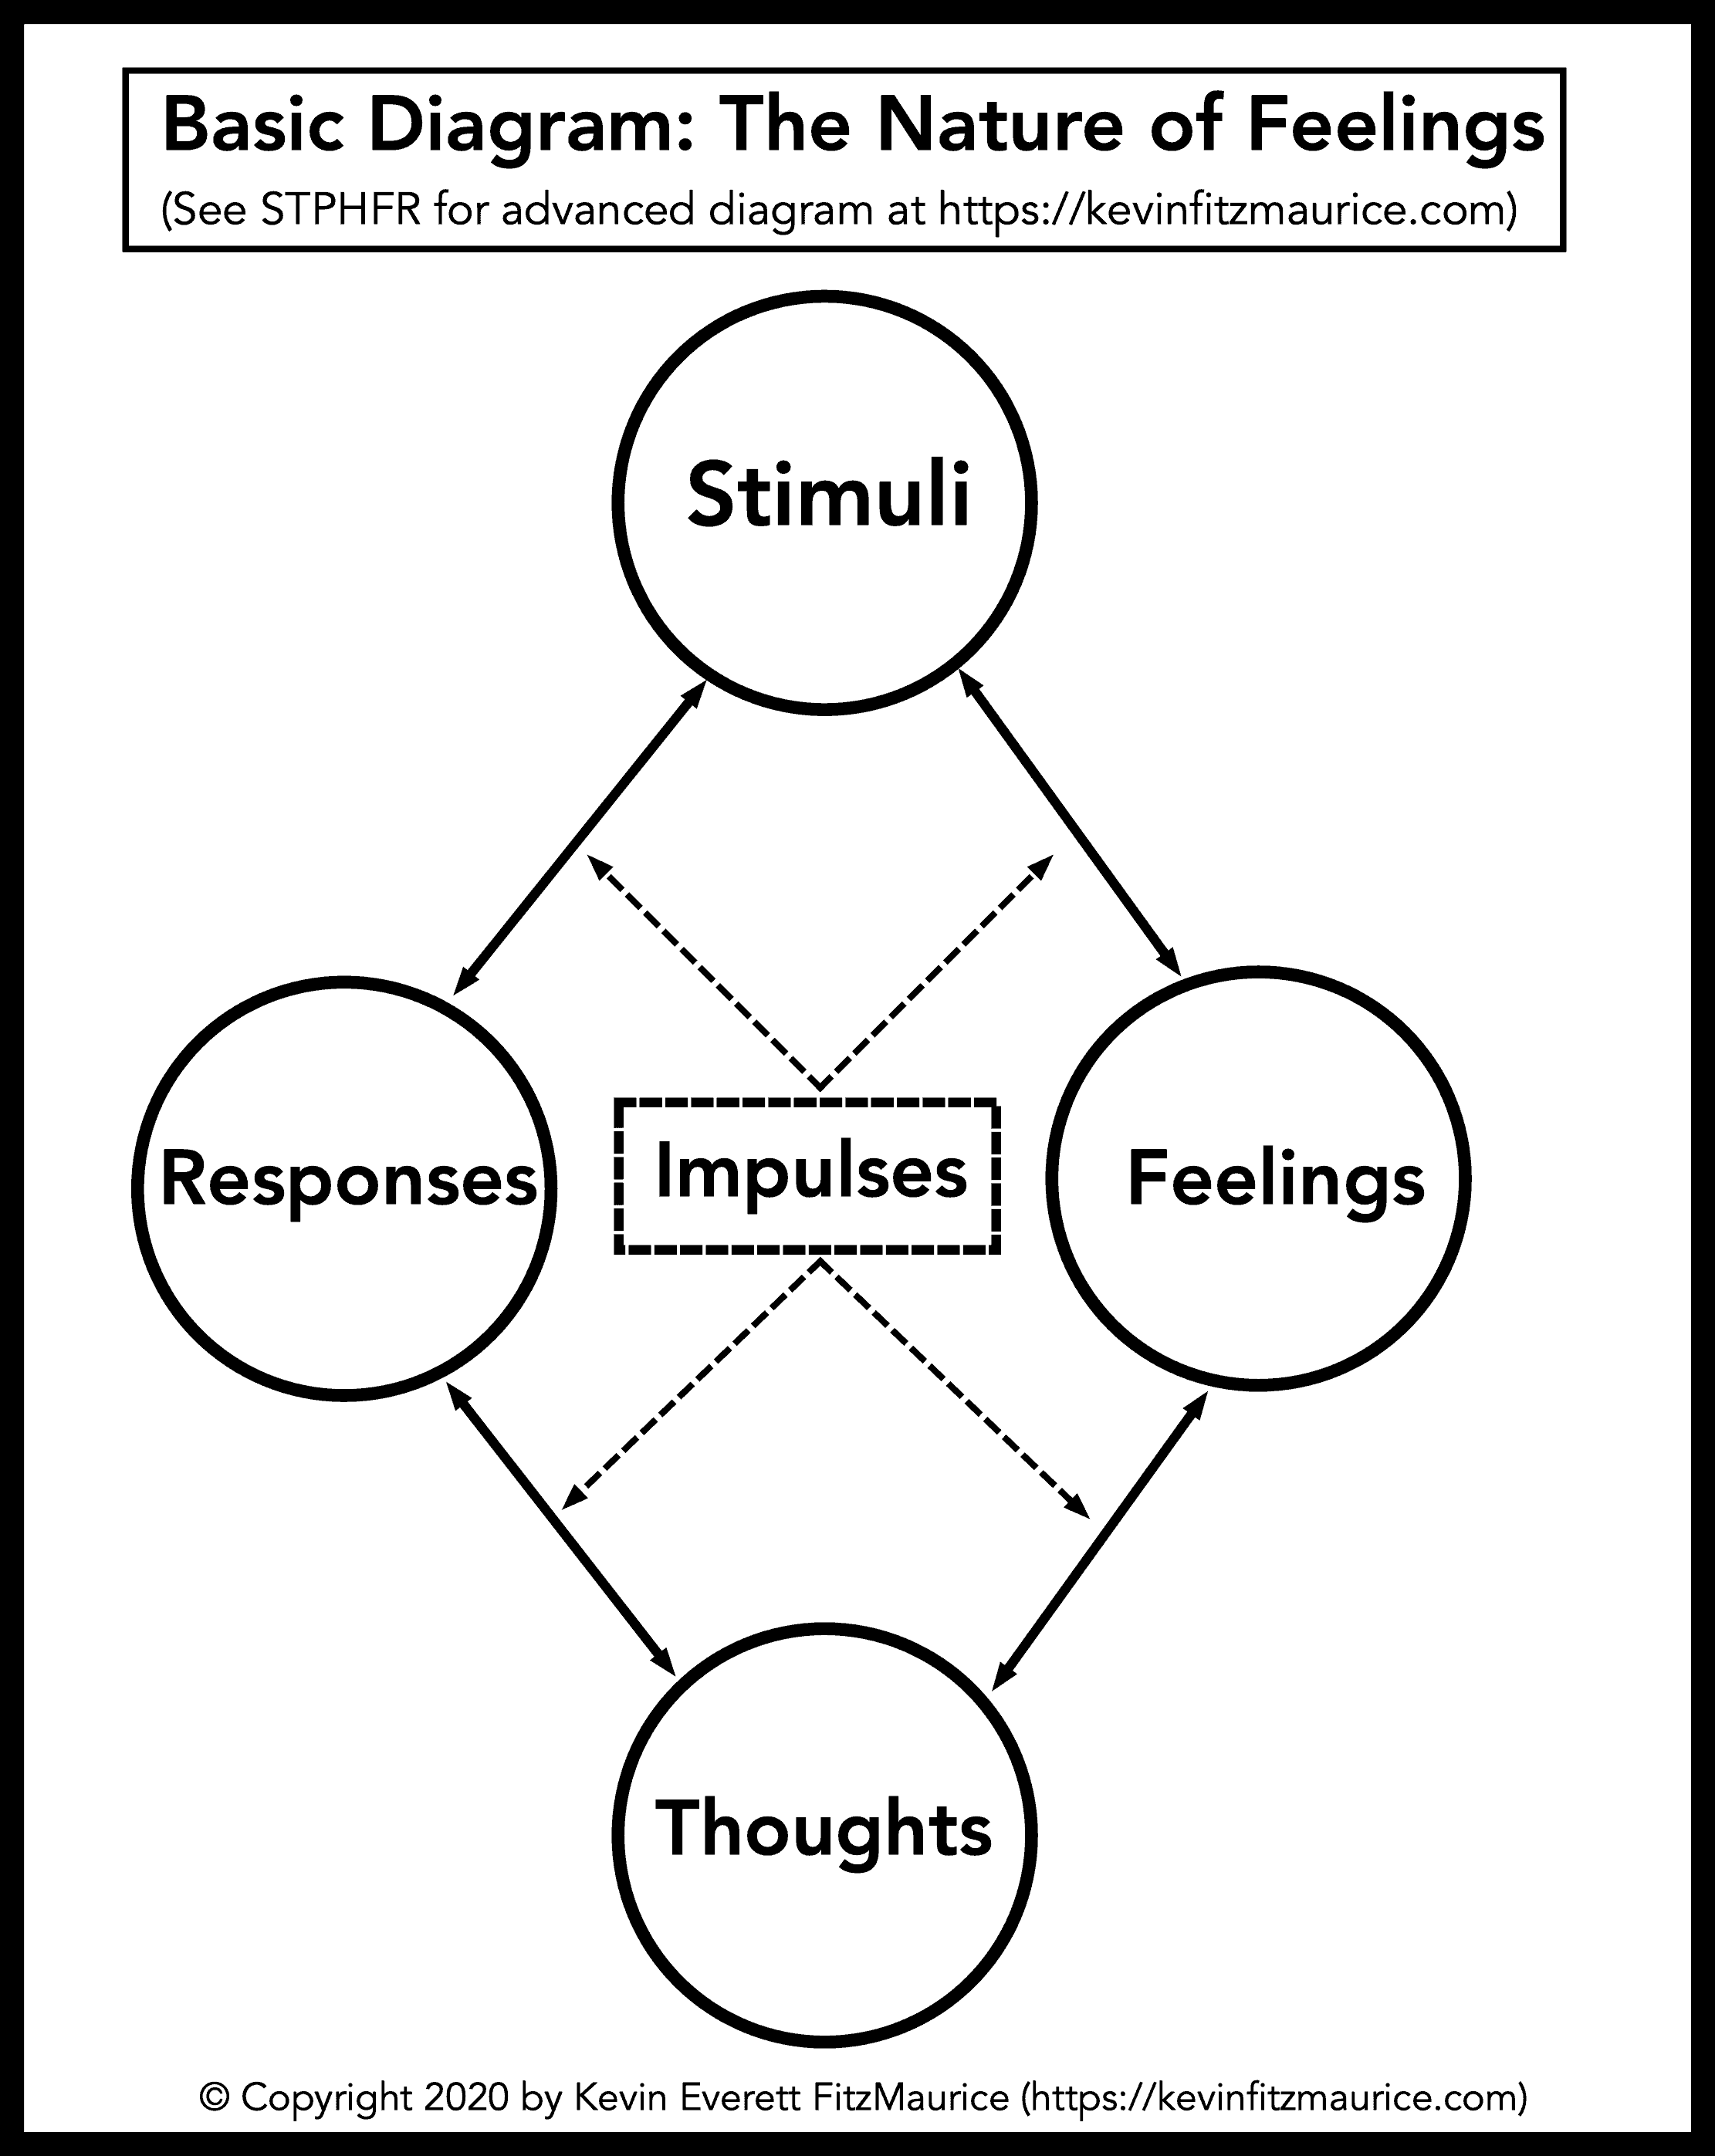 Basic Diagram on the Nature of Feelings